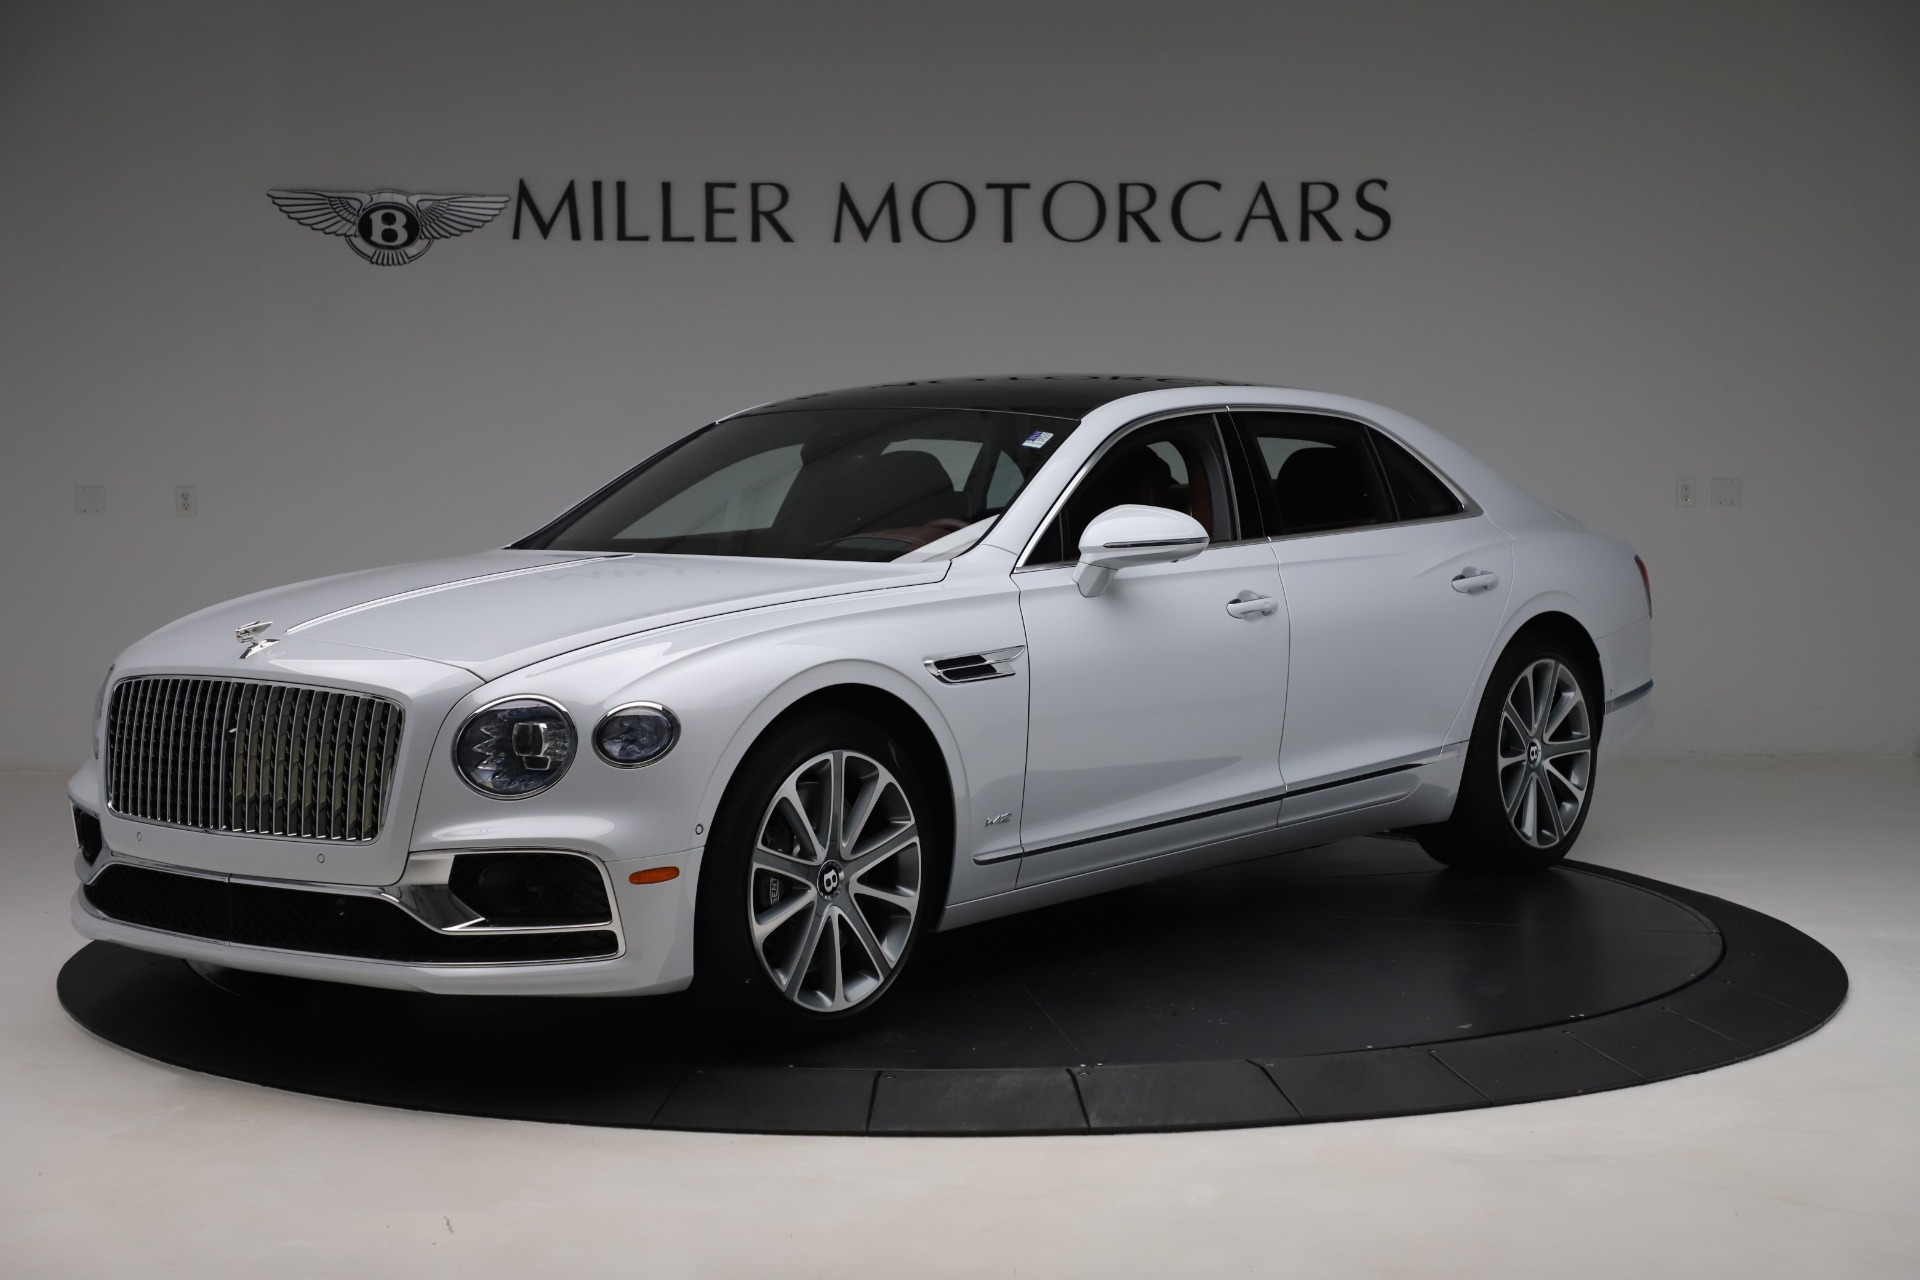 New 2021 Bentley Flying Spur  For Sale In Westport, CT 3230_p2